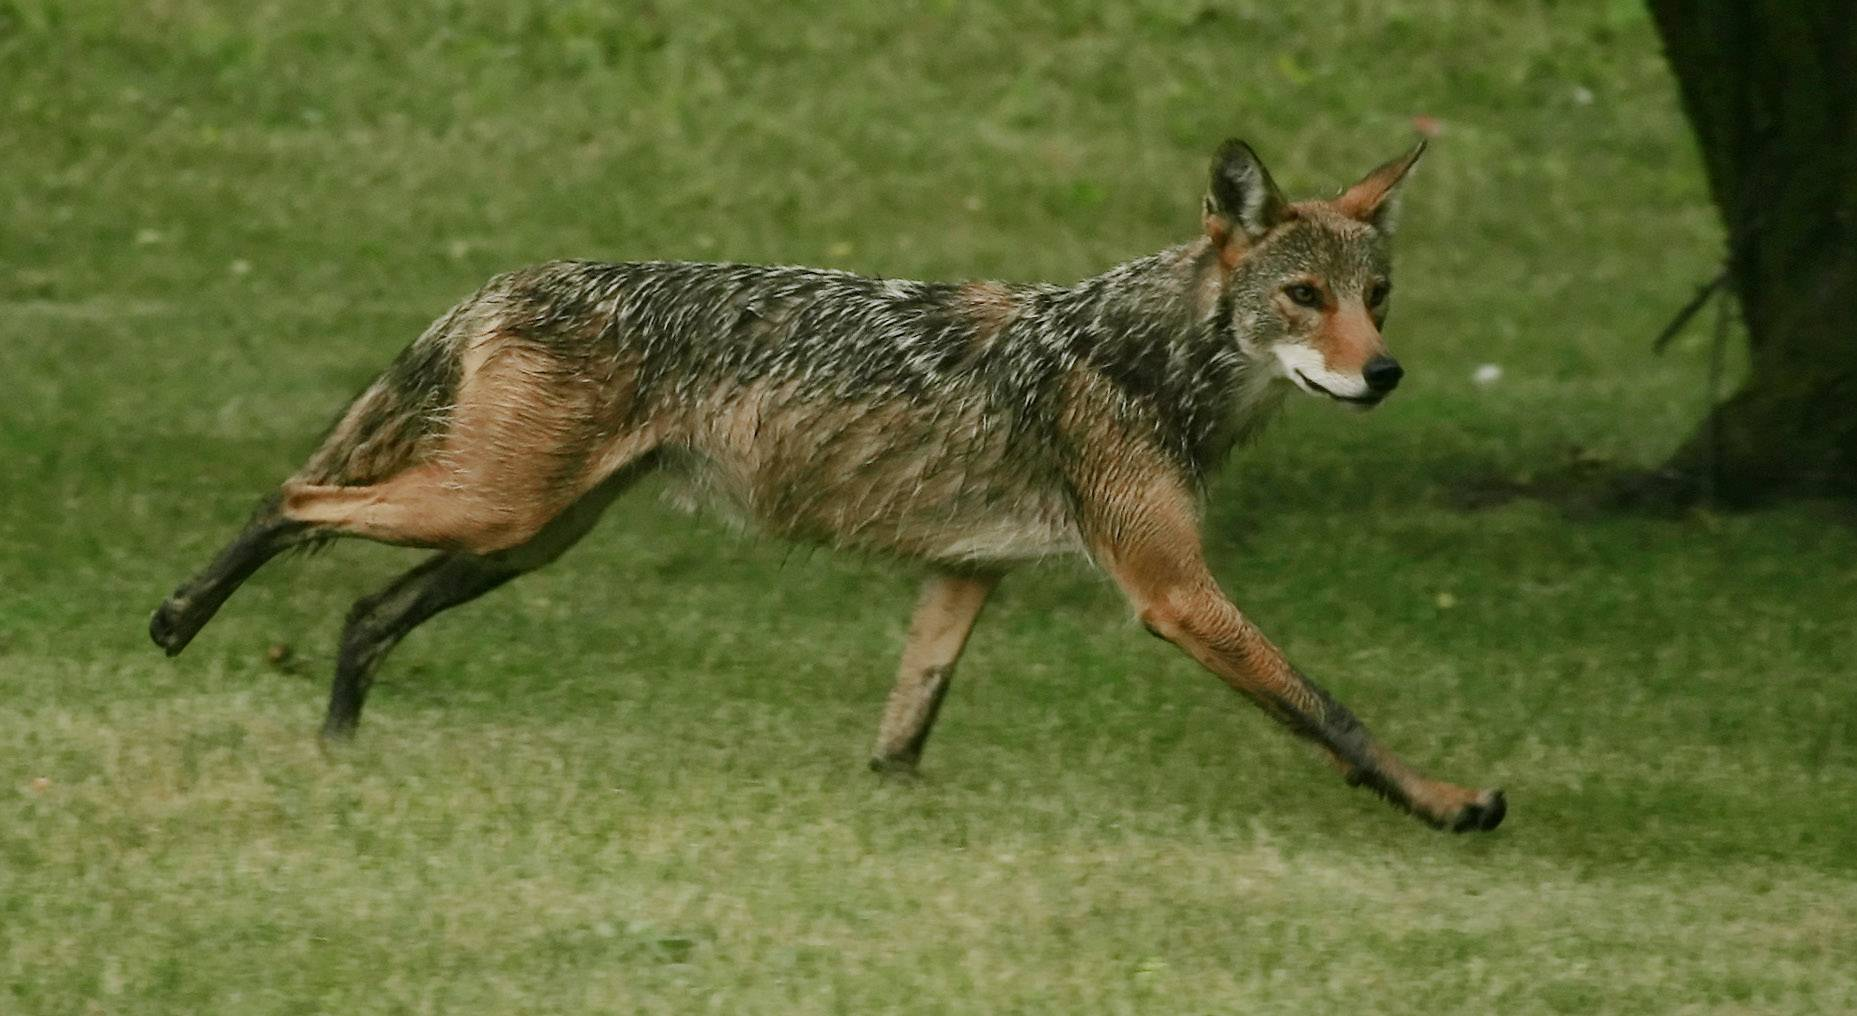 A surge in coyote sightings recently in Grayslake has led village officials to seek trappers to curb the population.